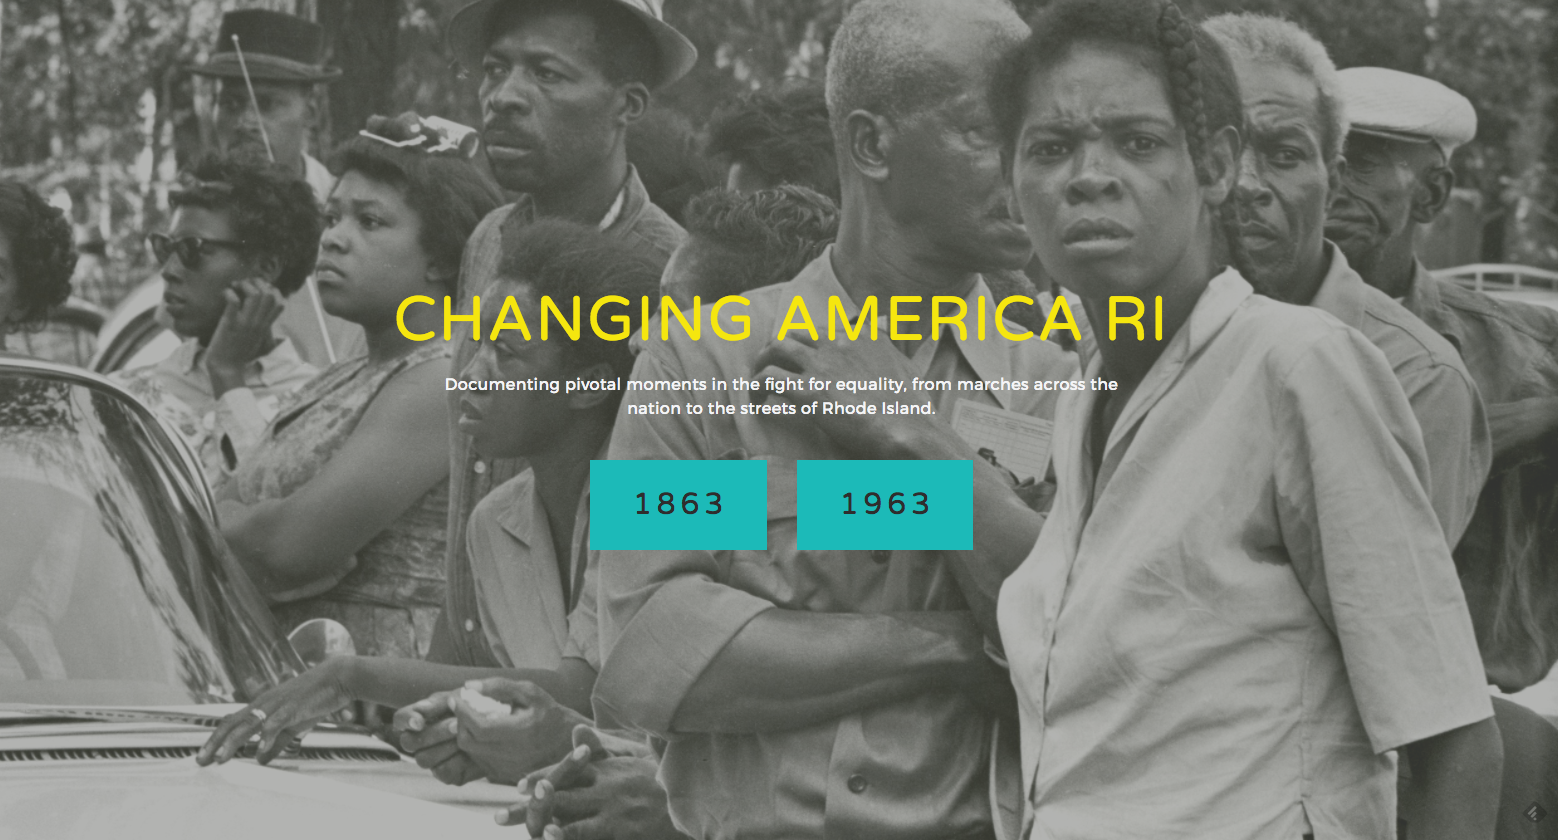 Website homepage. To explore, go to: http://www.changingamerica-cssj.org/